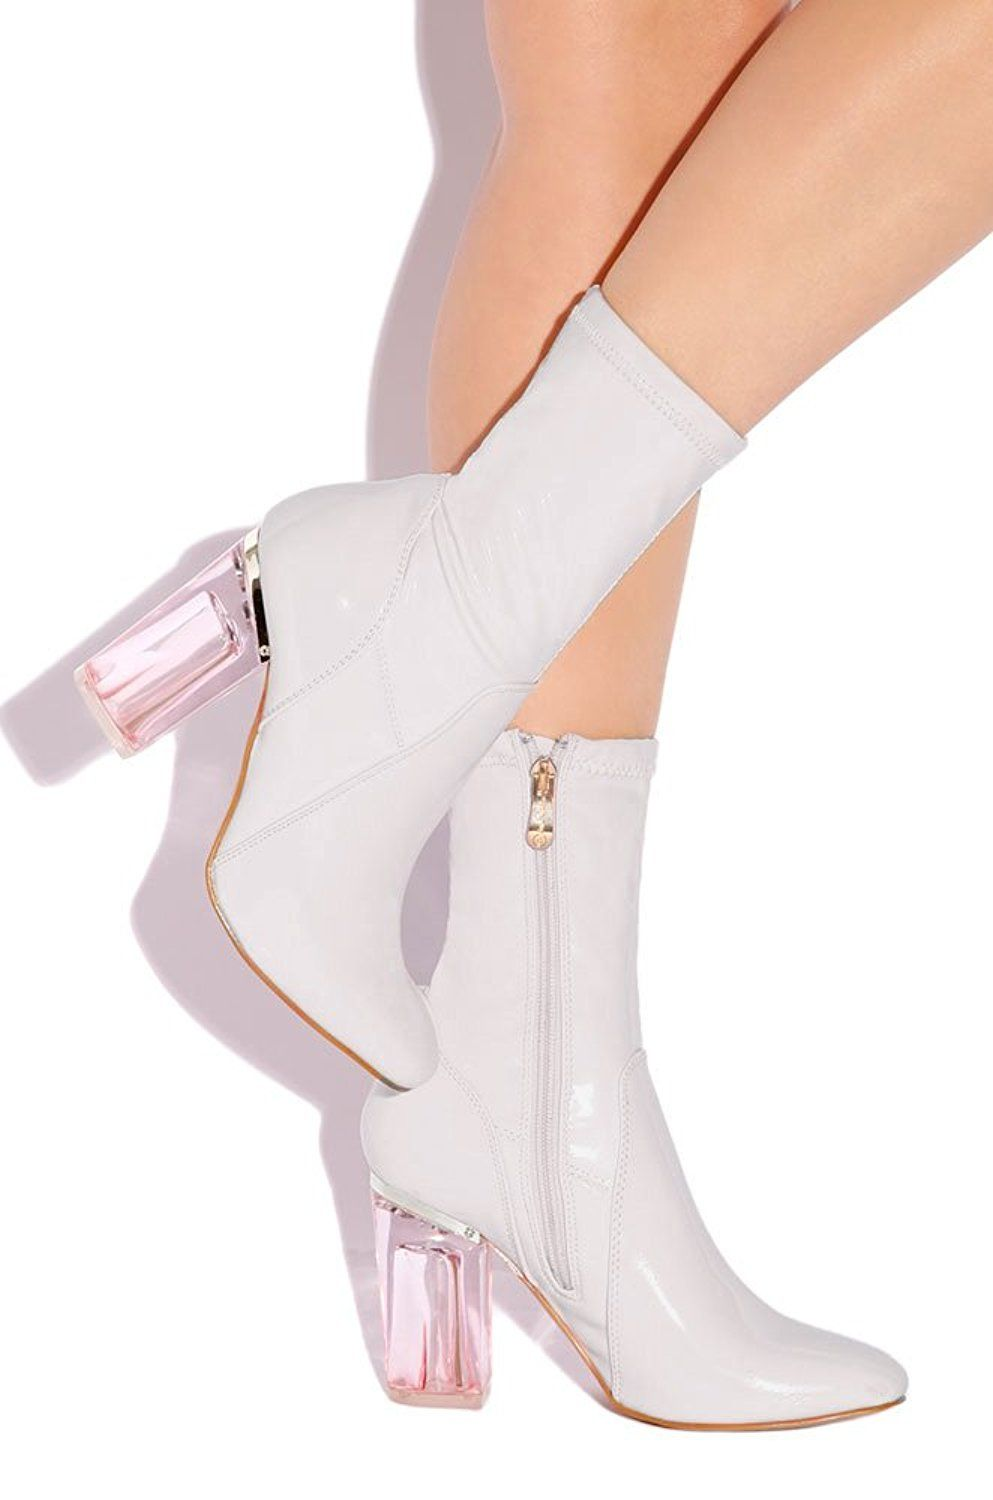 TAMMYS Exclusive No frontin Glass Heel Stretch Ankle Boot